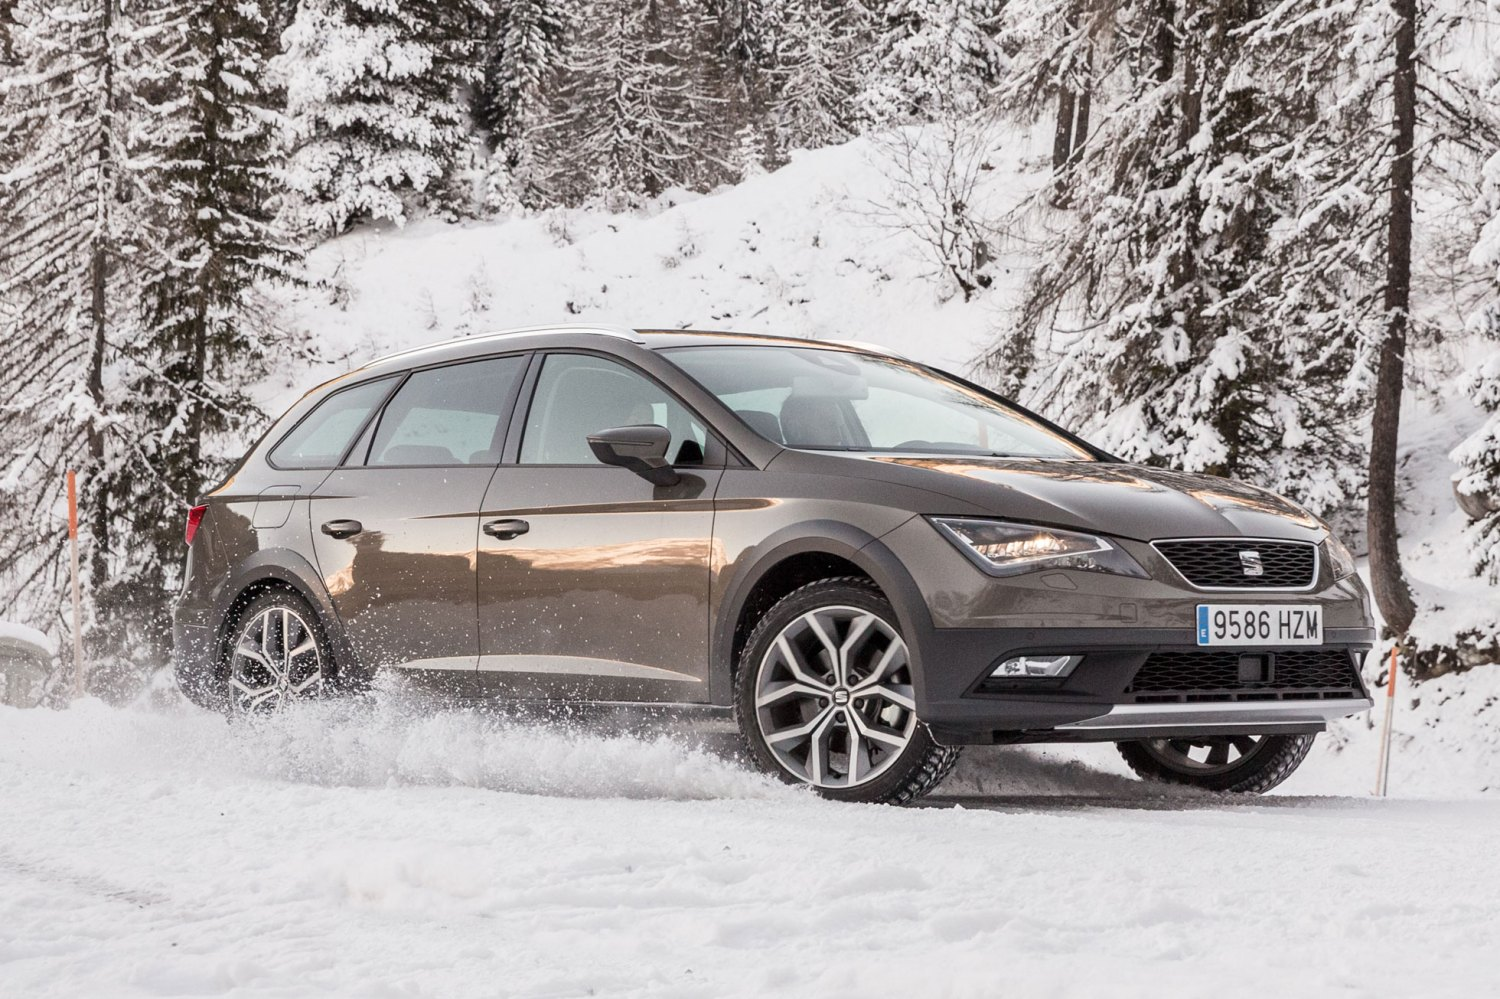 The SEAT Leon X-Perience can practically drive itself